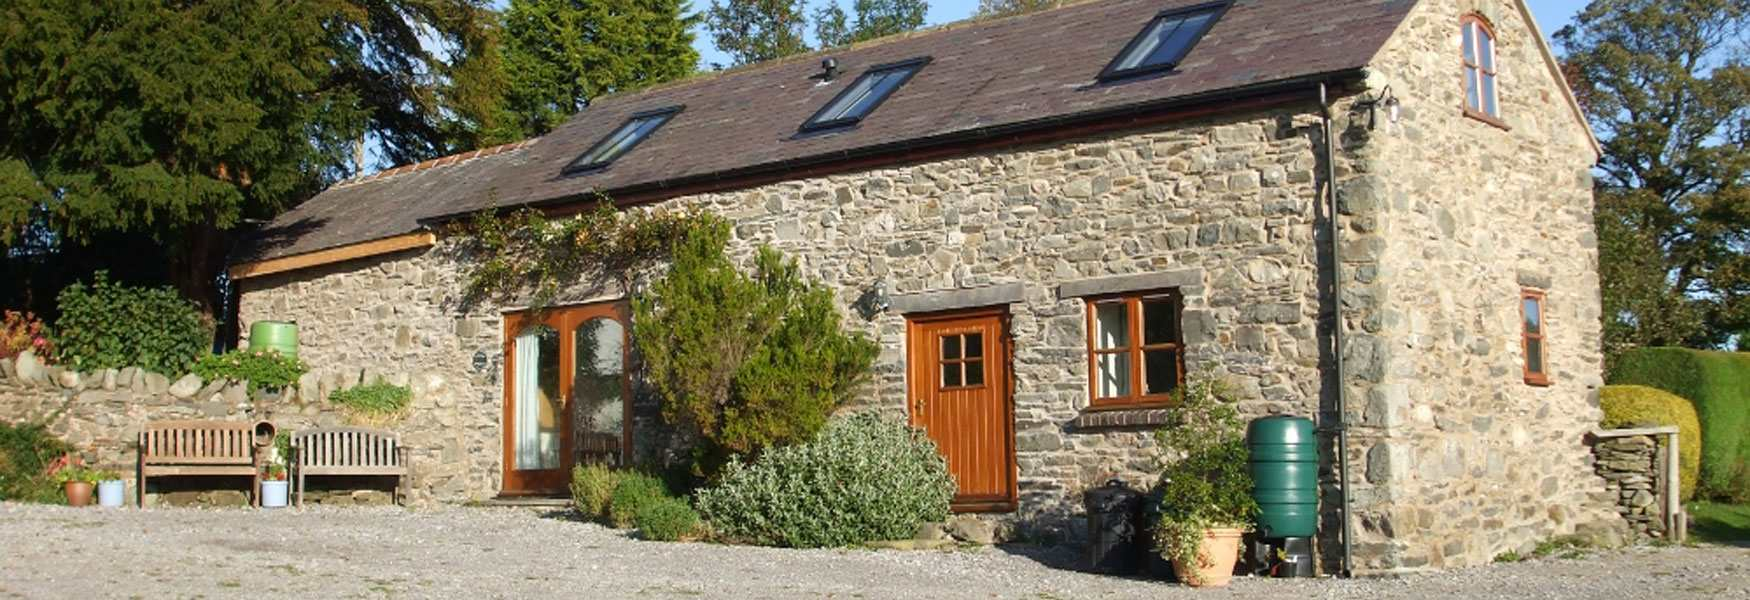 Holidays Cottages In North Wales